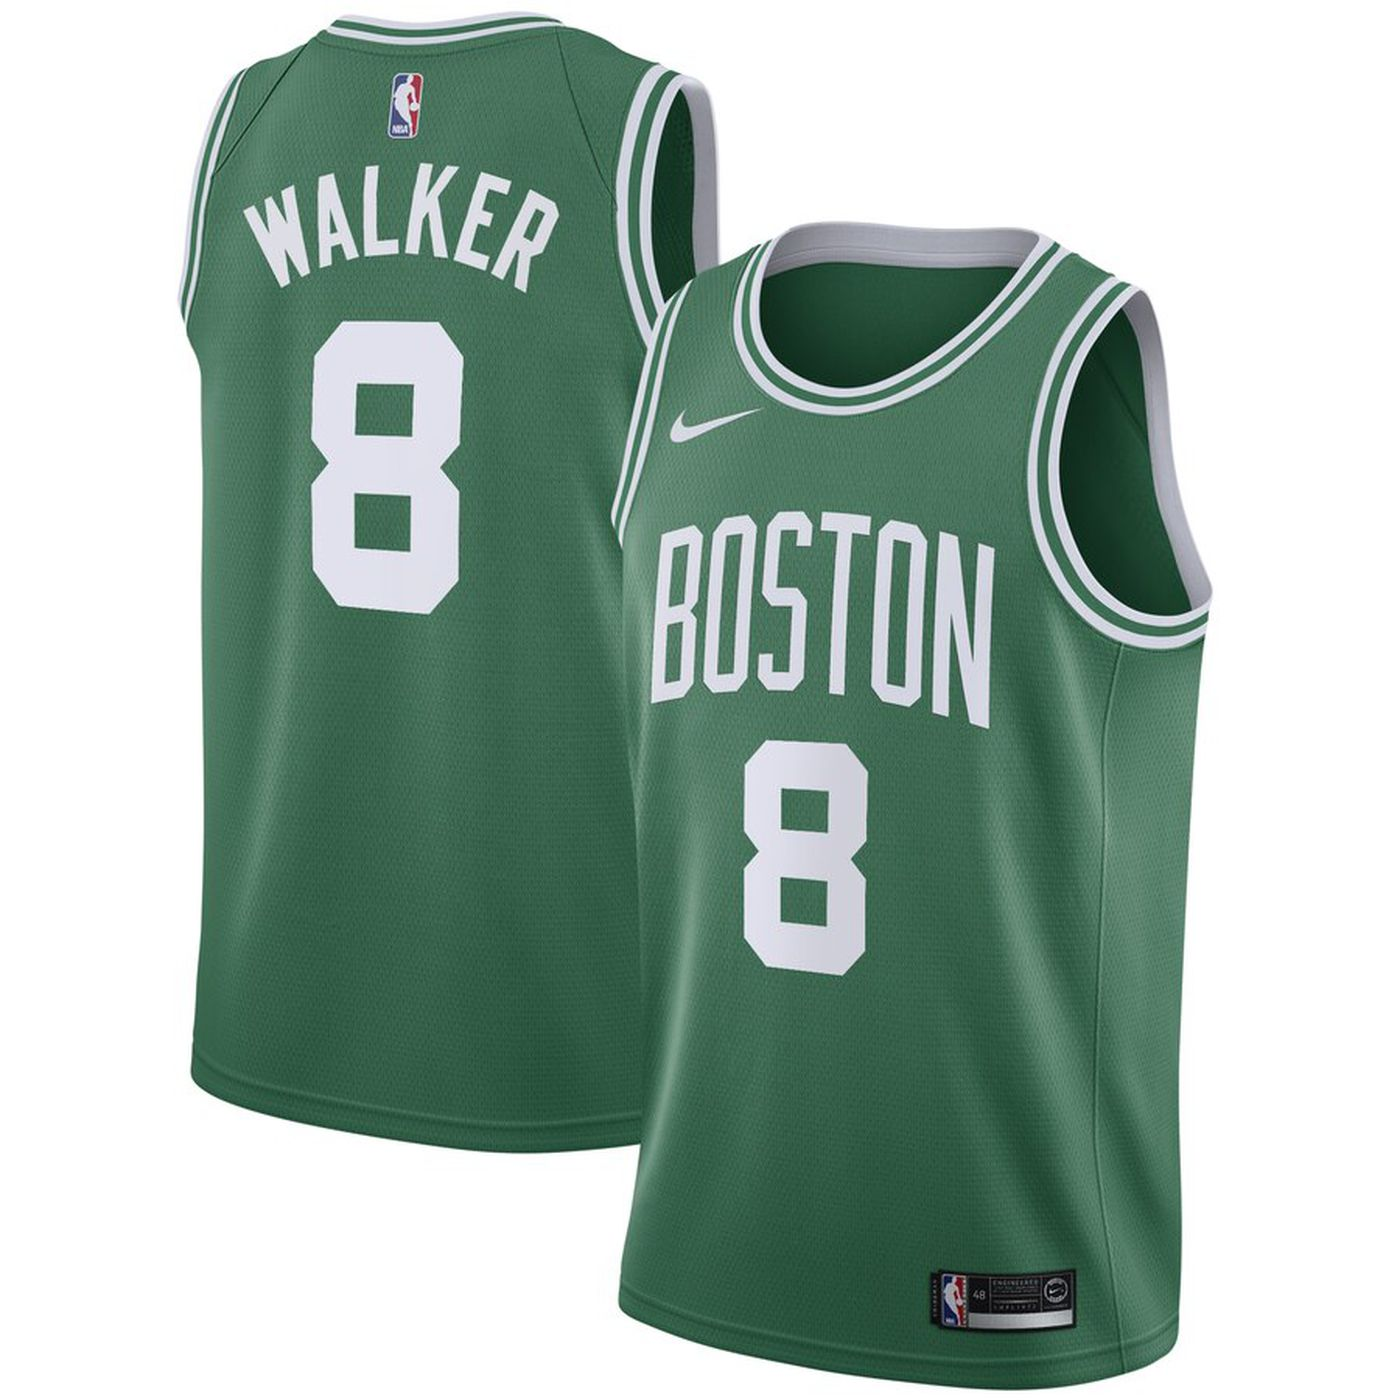 ca5c9588ce7d9 The Kemba Walker era officially begins with his new Celtics Nike jersey!